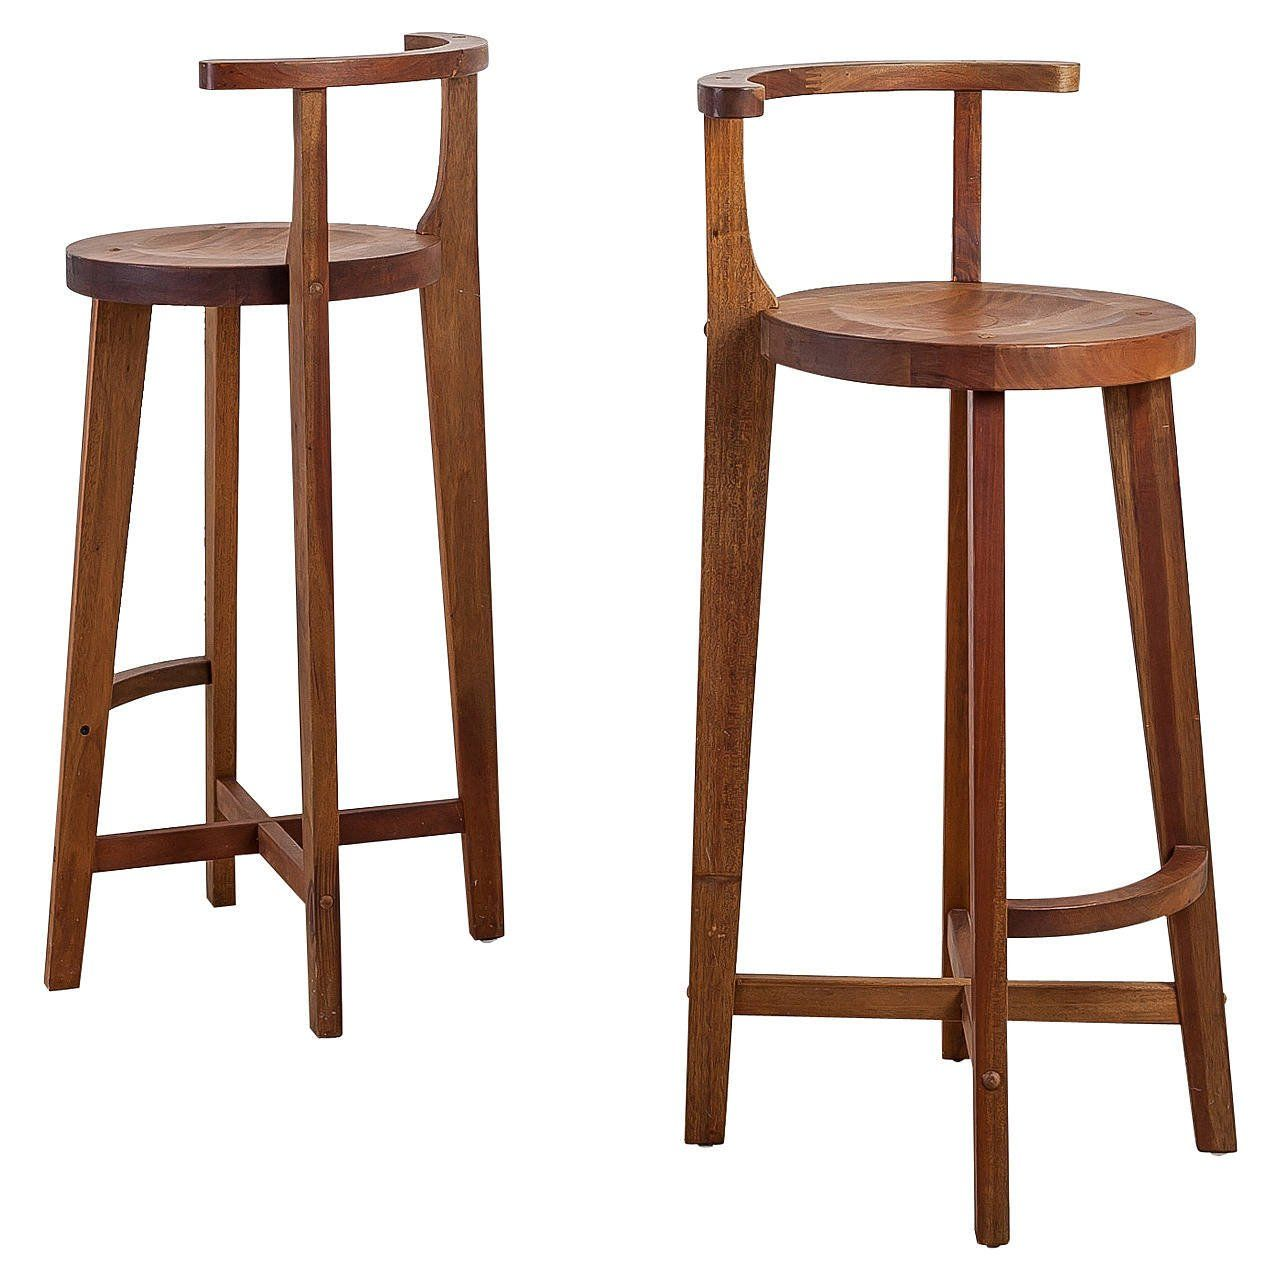 Pair Studio Crafted Wooden Bar Stools With Rounded Back Rests Wooden Bar Stools Bar Stools Bar Stools With Backs